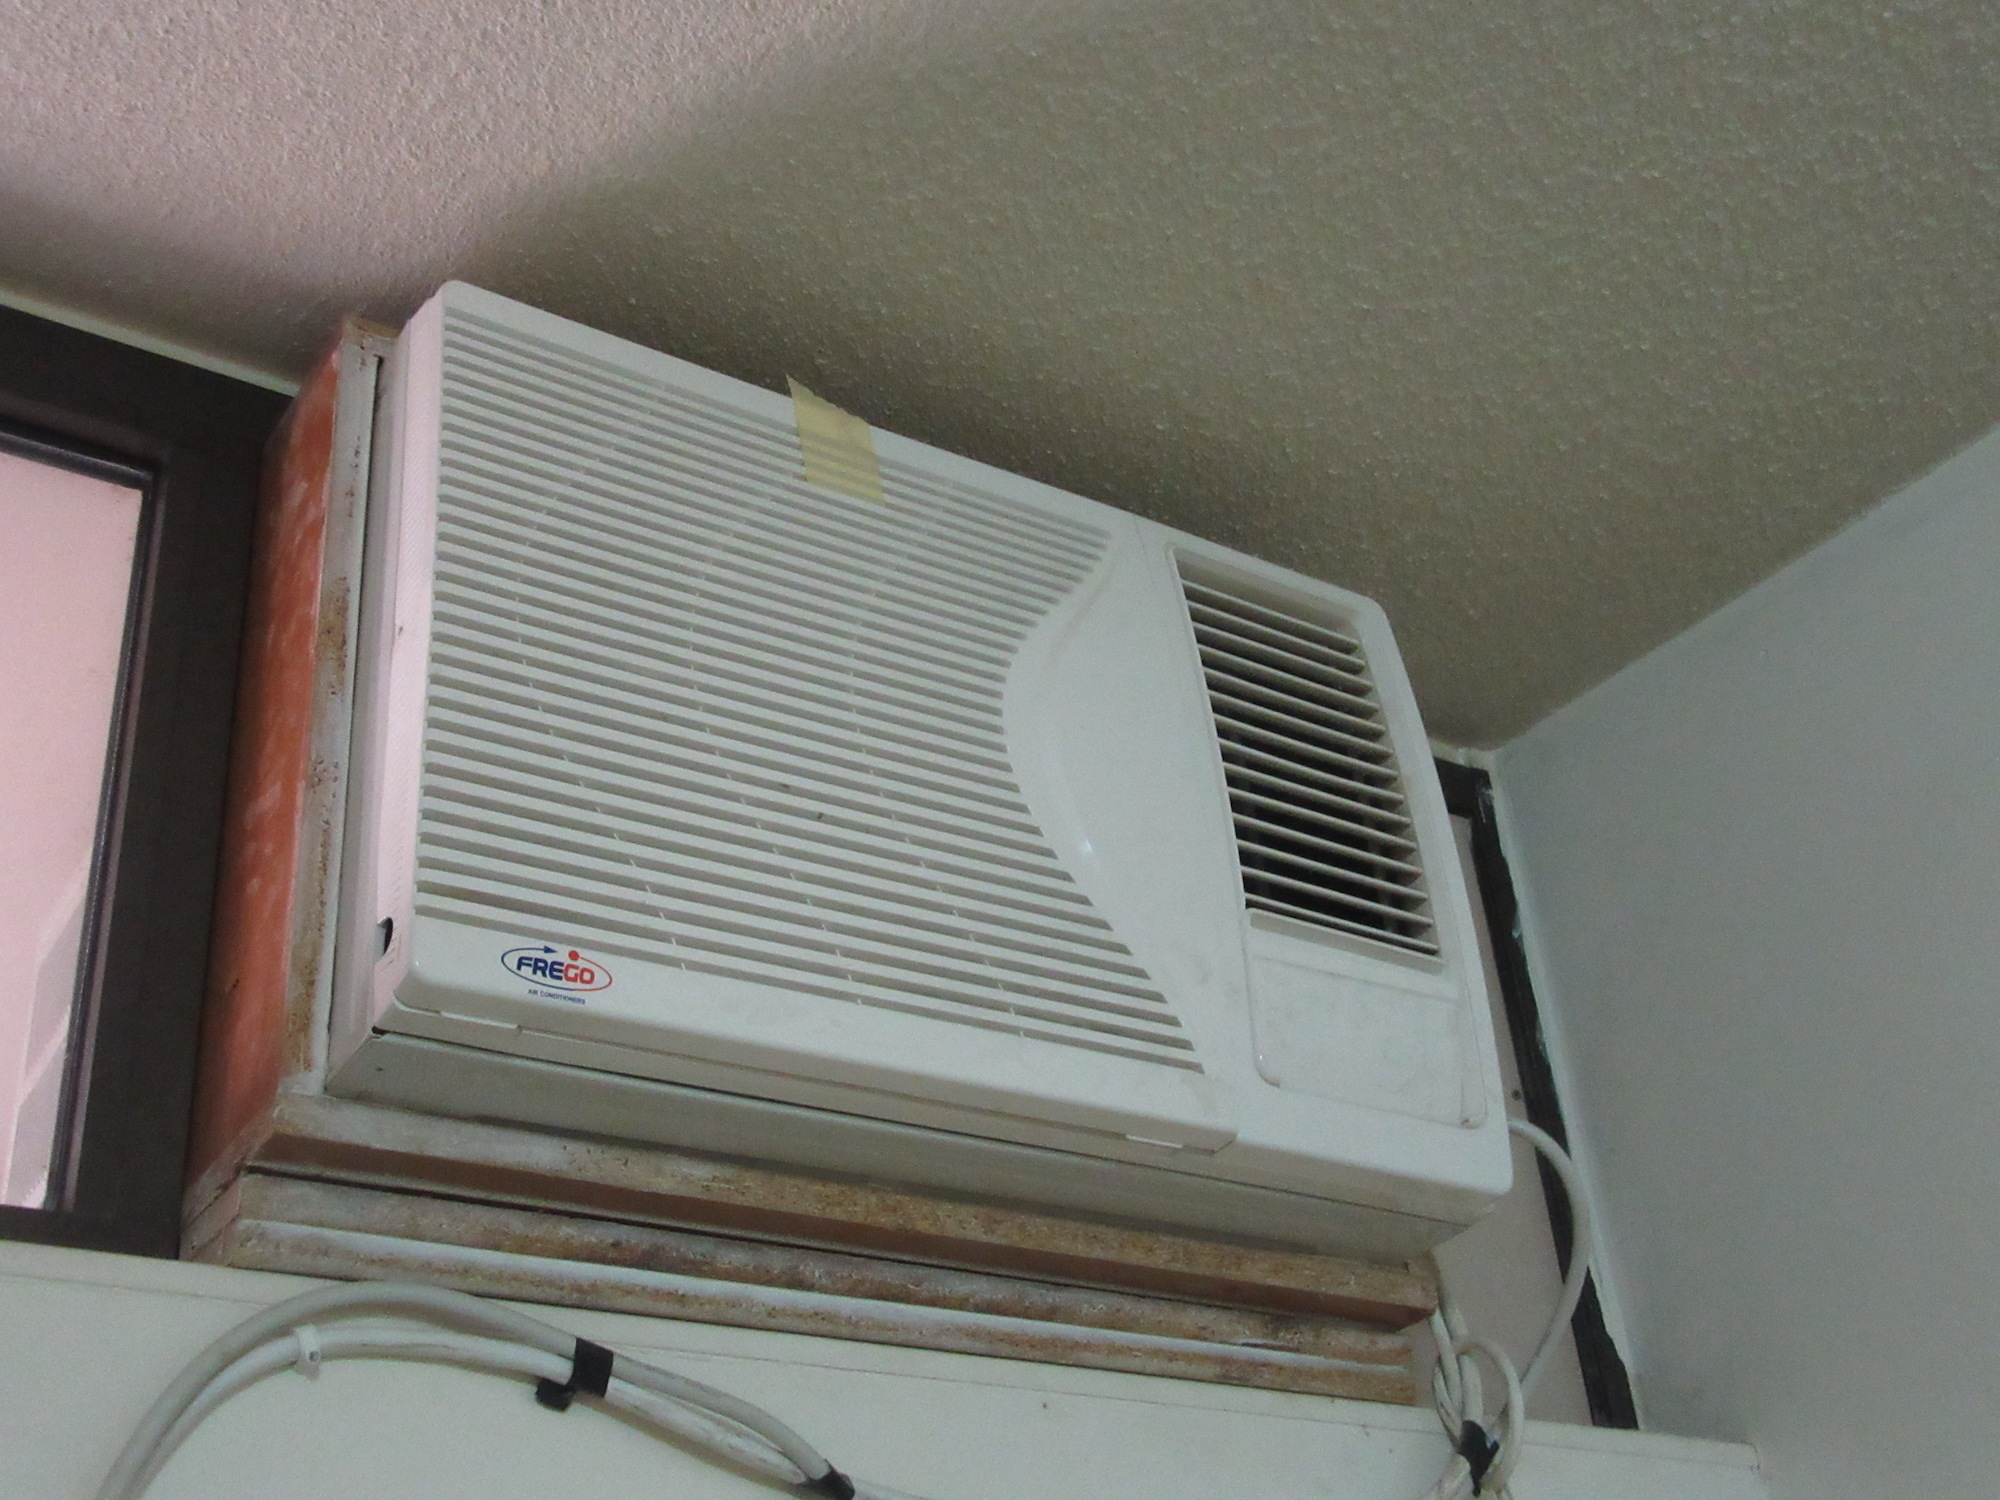 Wall_mount_air_conditioner